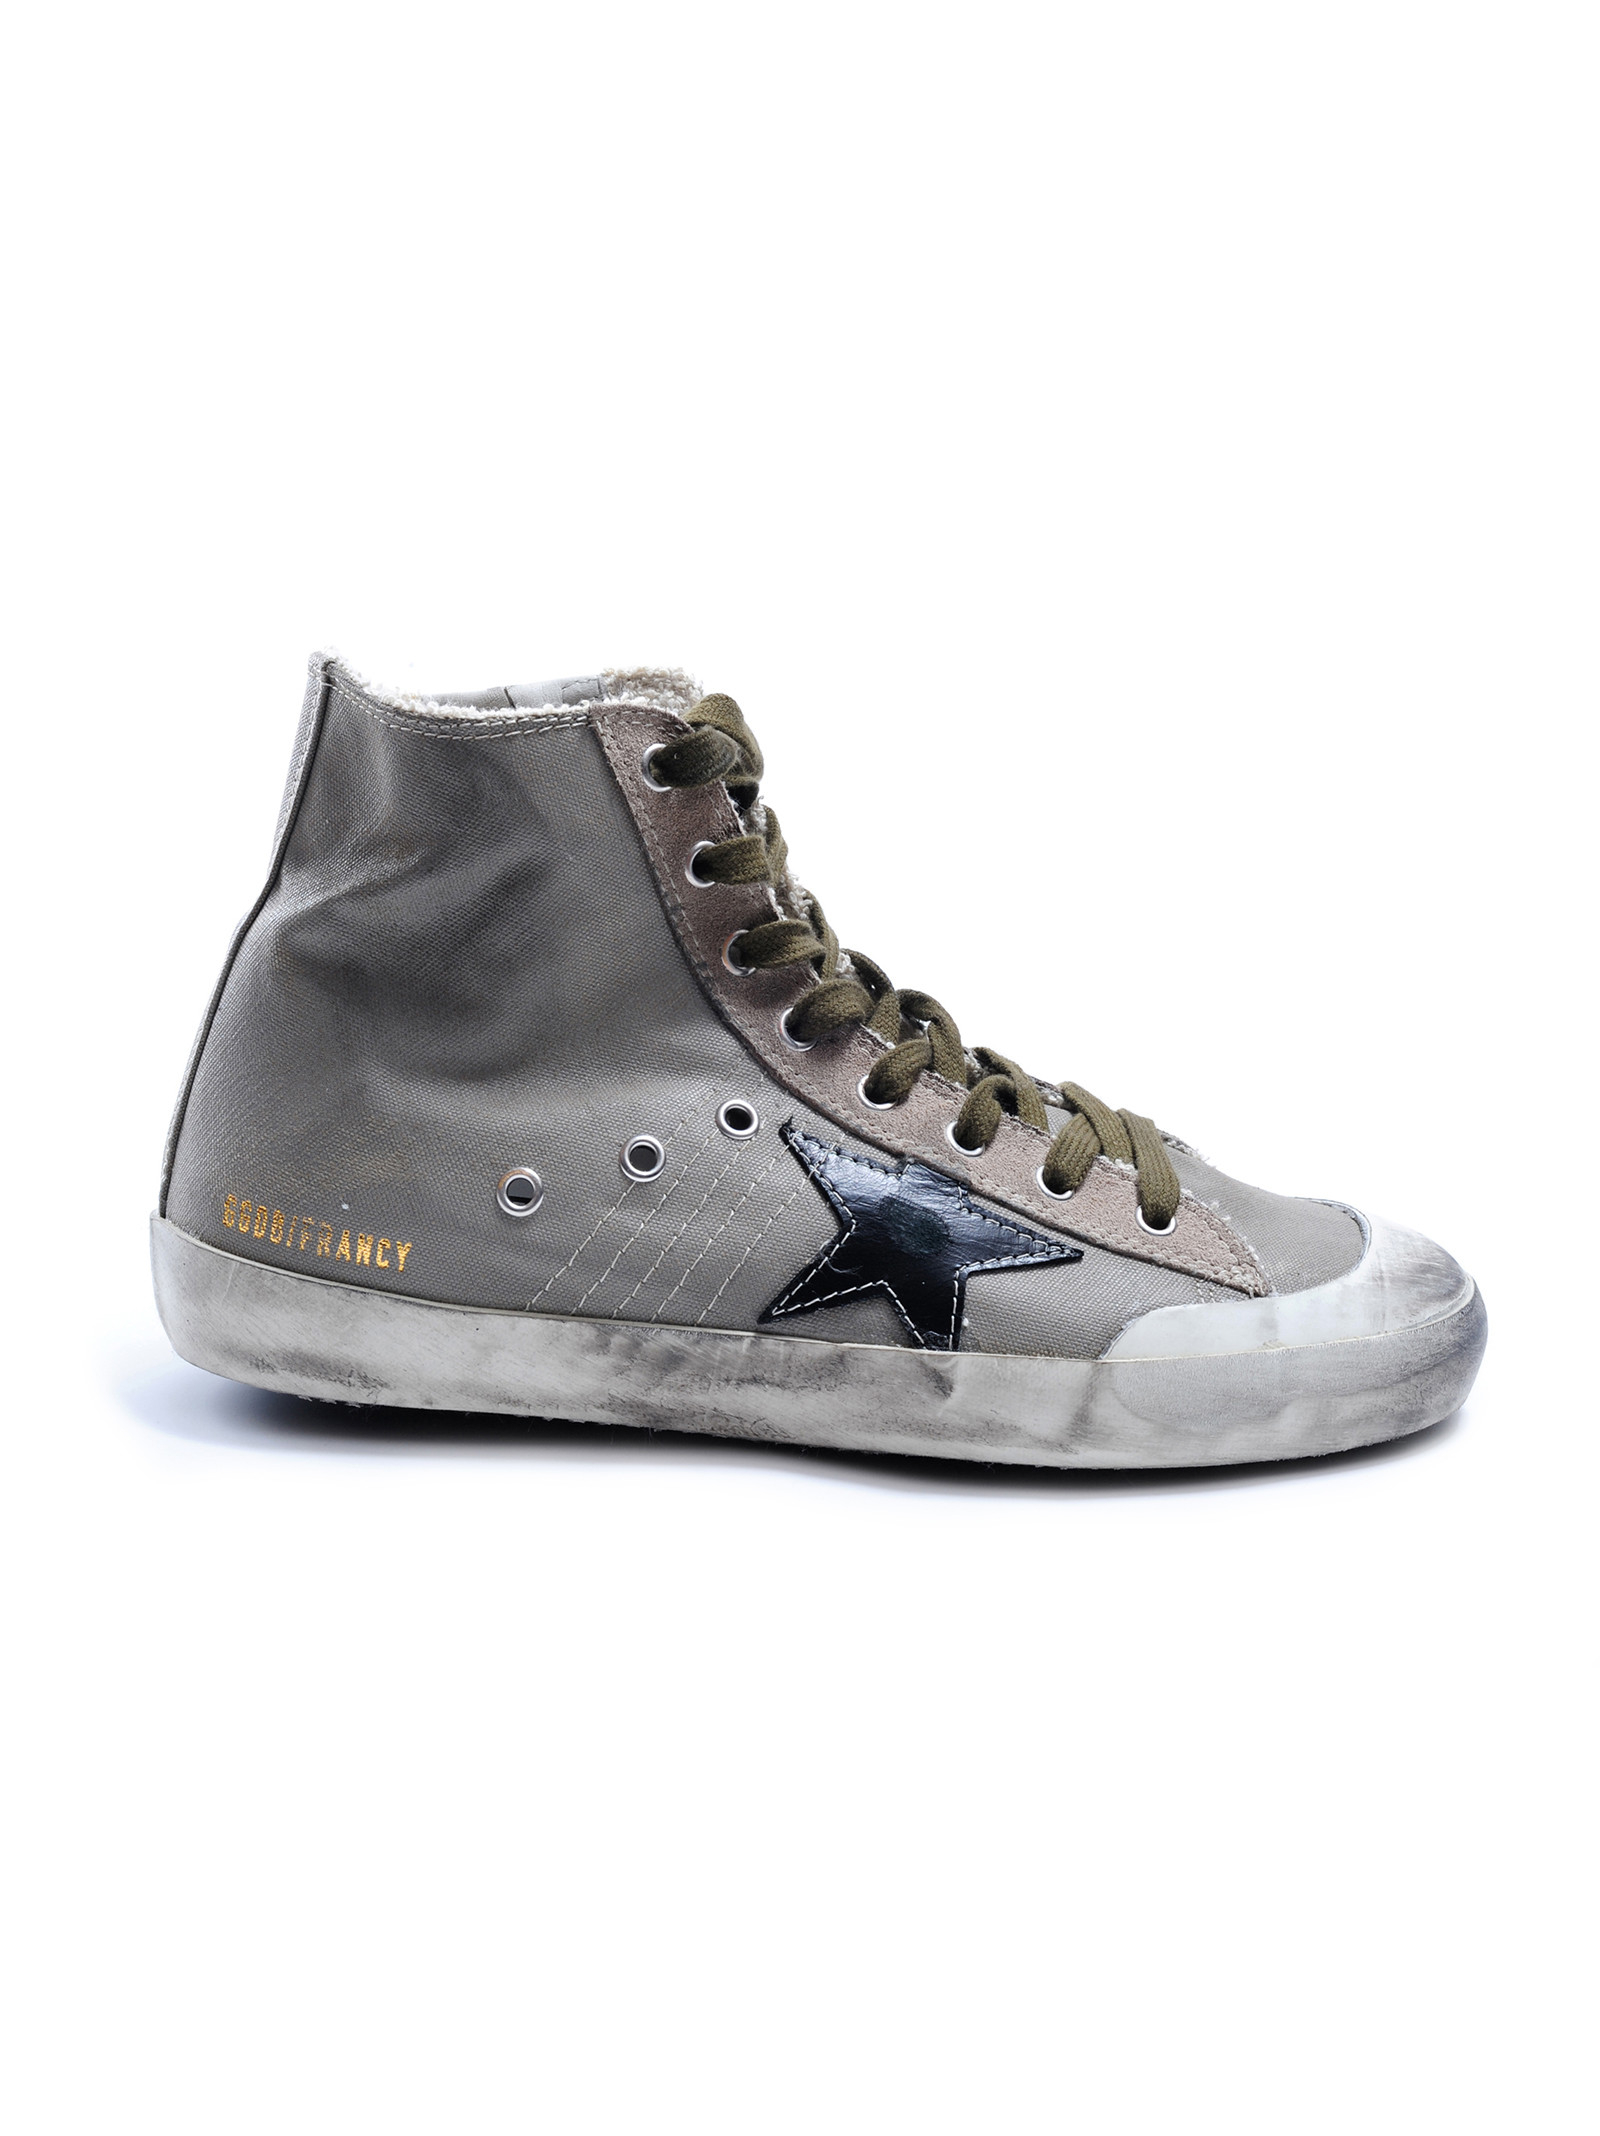 golden goose deluxe brand francy leather and canvas high top sneakers in gray for men grey pen. Black Bedroom Furniture Sets. Home Design Ideas